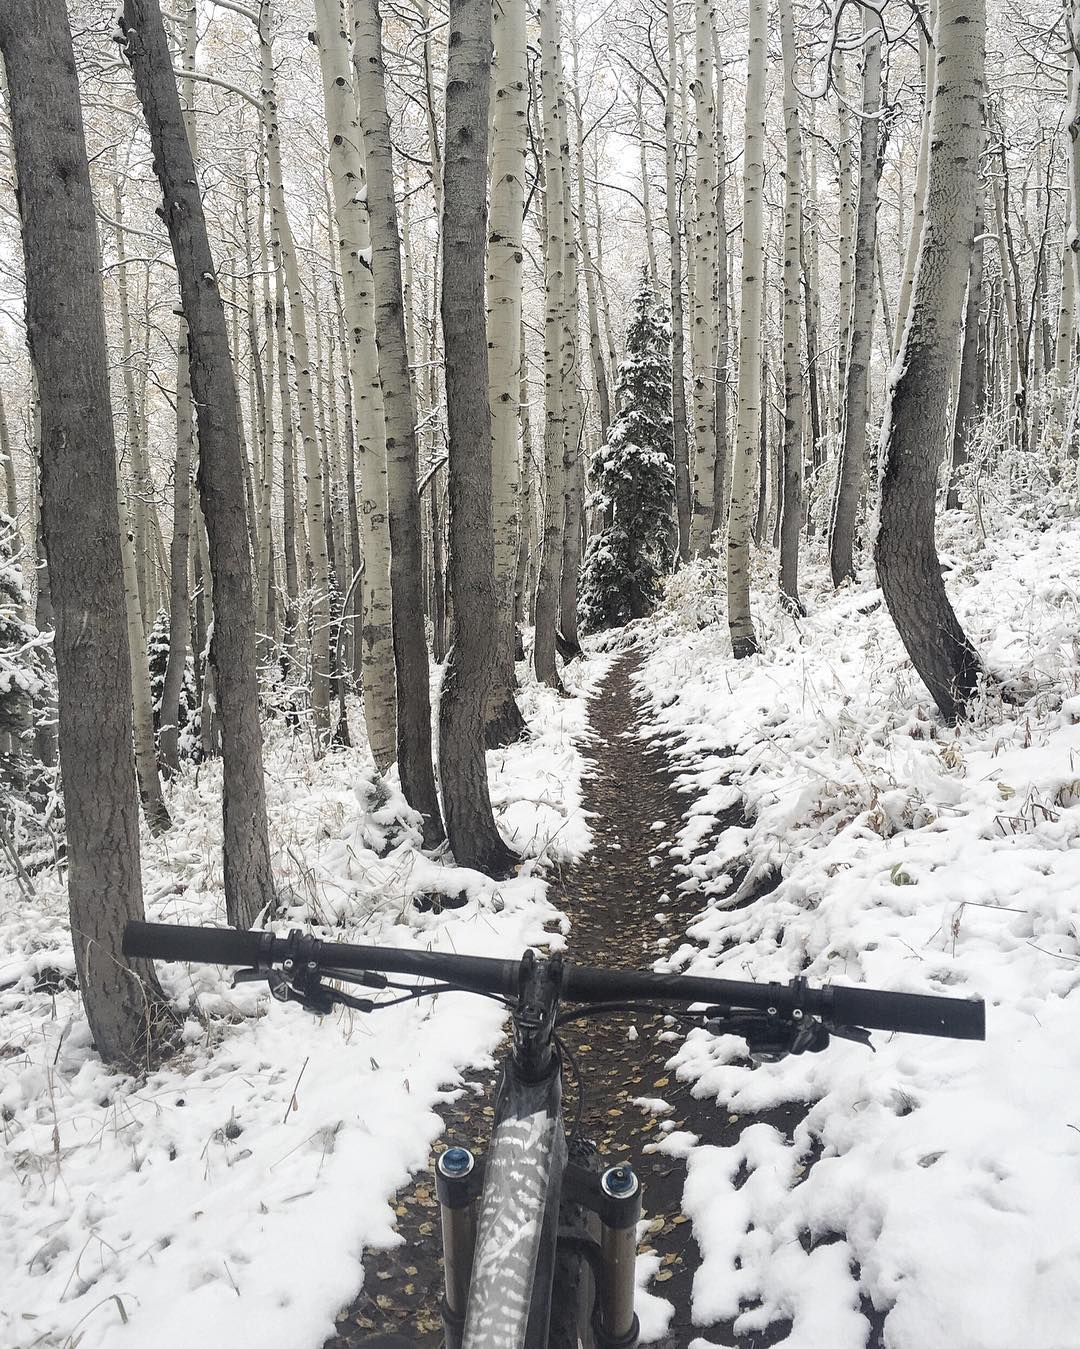 Love this view any time of year, but especially during the change of seasons. And. I really love sketchy conditions on the trails - makes for an interesting challenge. Ha. #ParkCity #winteriscoming #sketchysurfaces #mountaintownlife #iamspecialized...